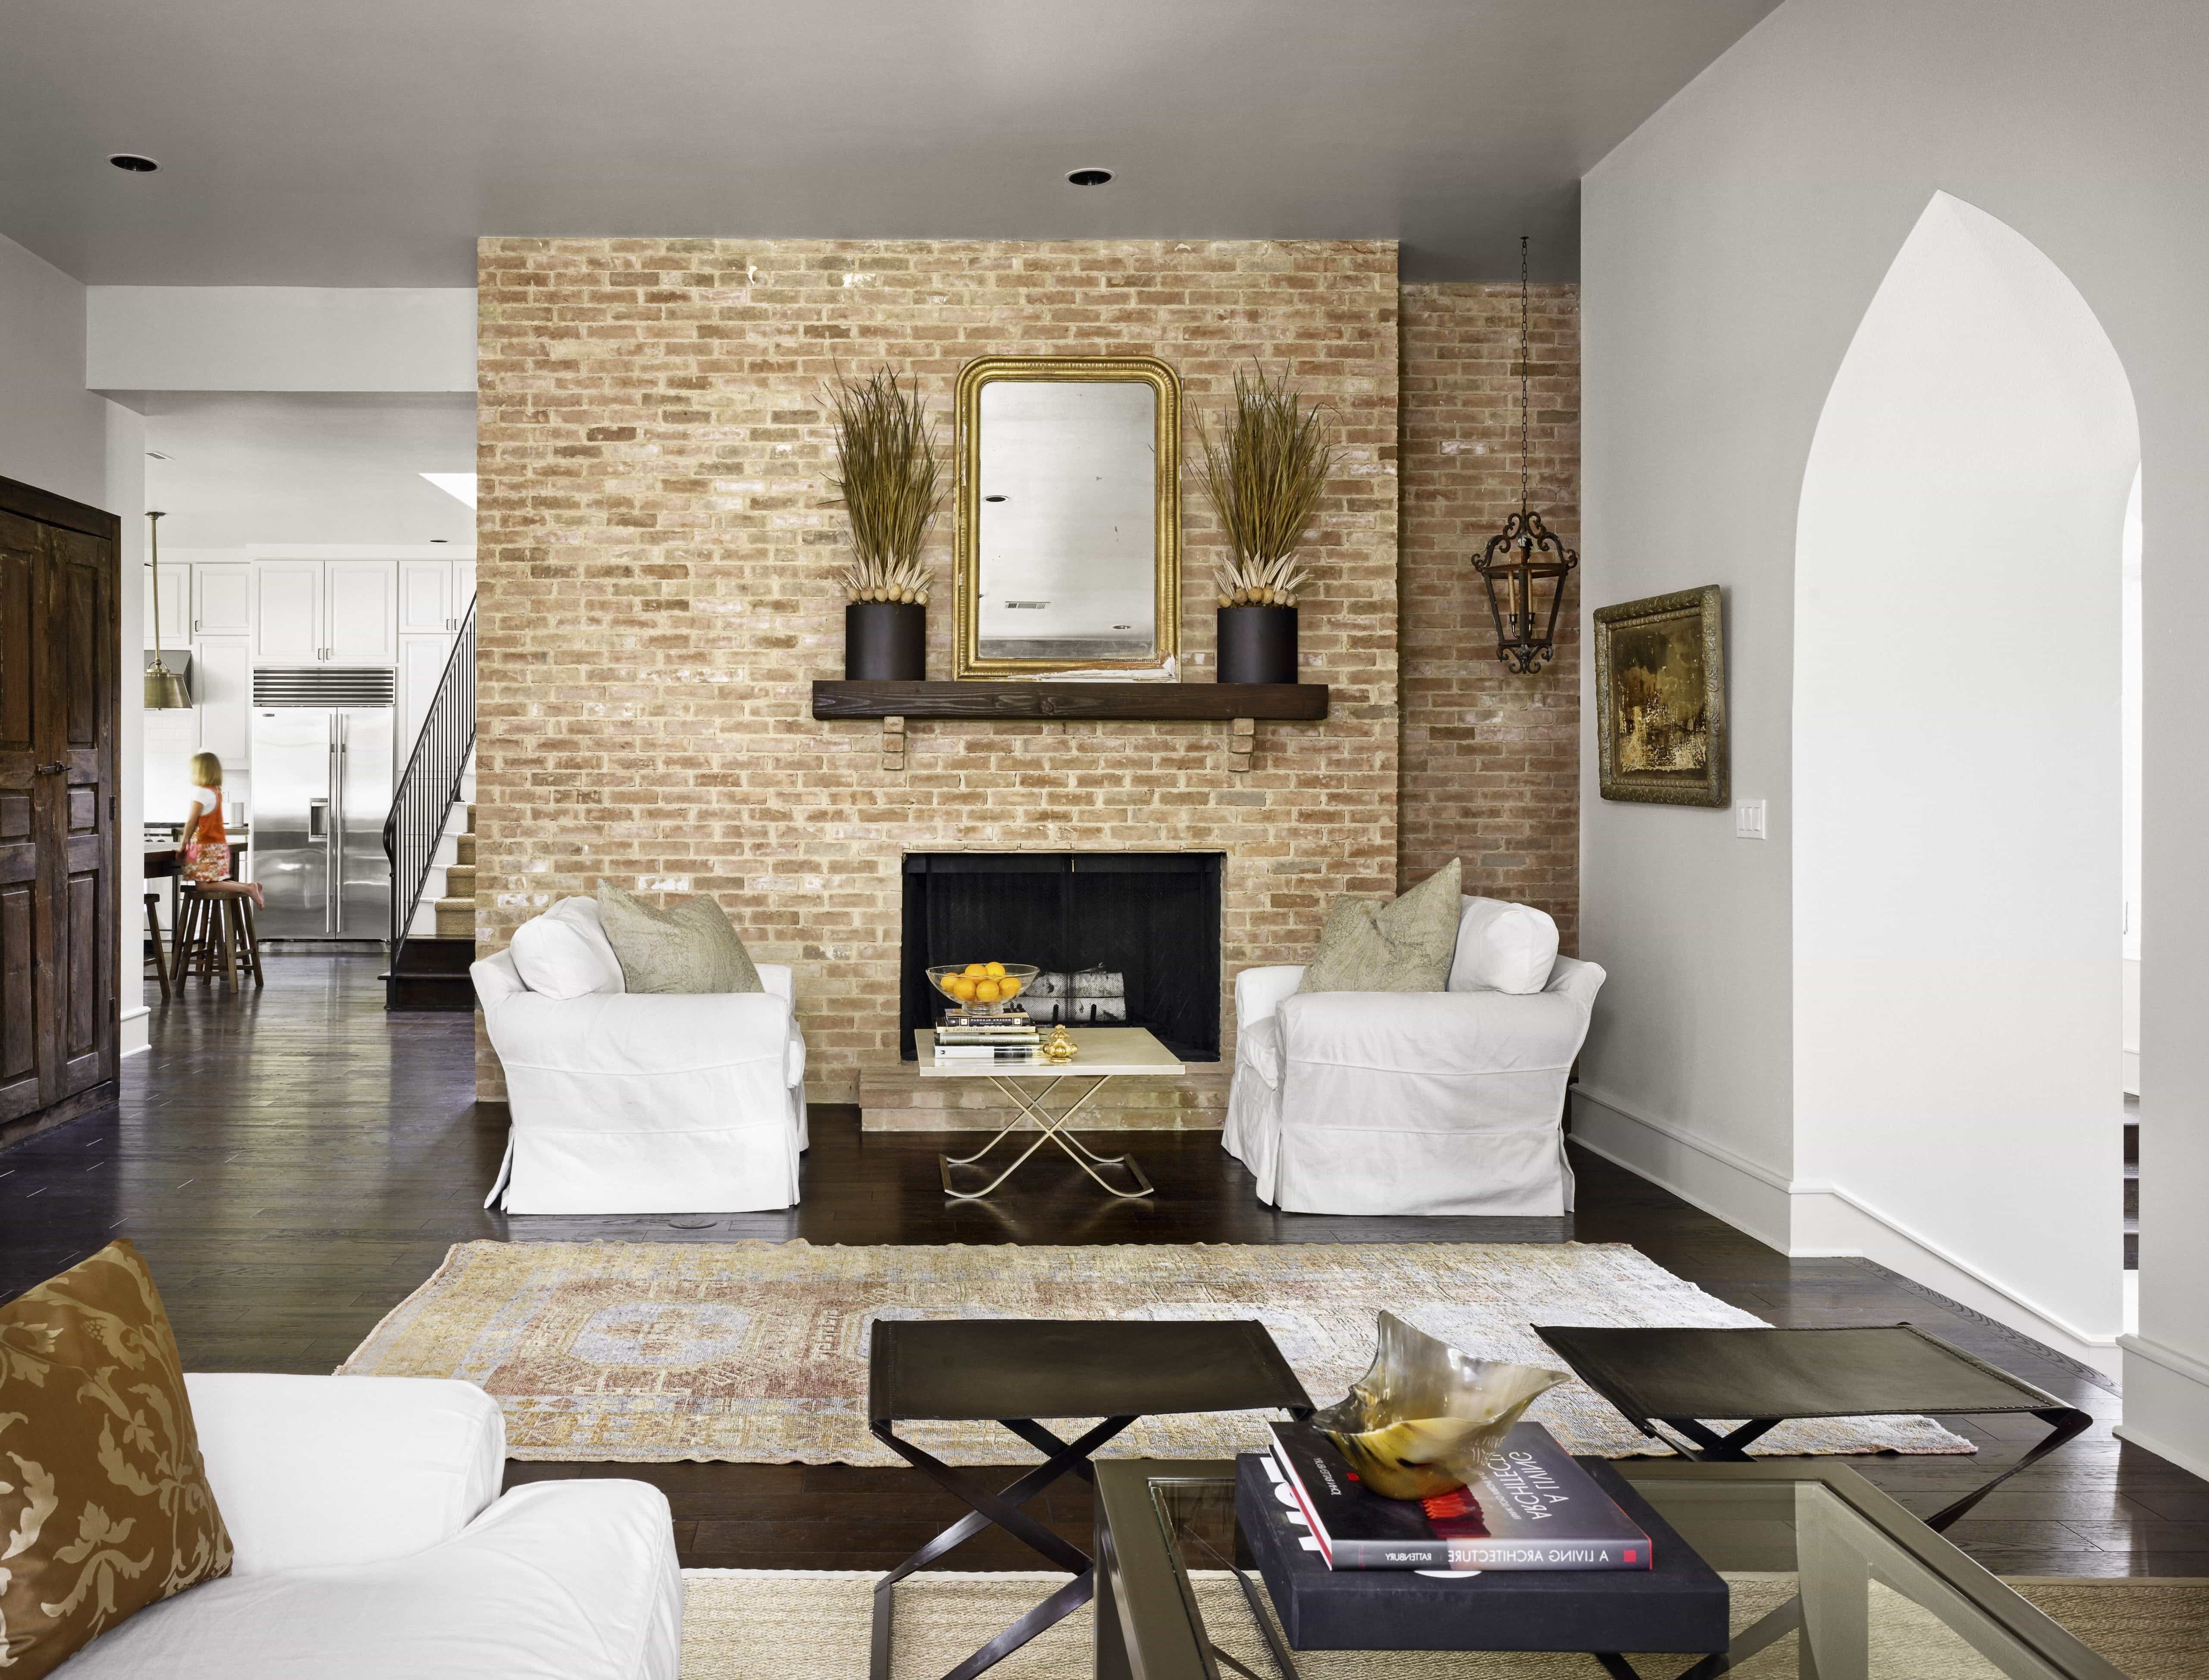 Minimal Vintage Living Room With Exposed Brick Wall (Image 17 of 30)